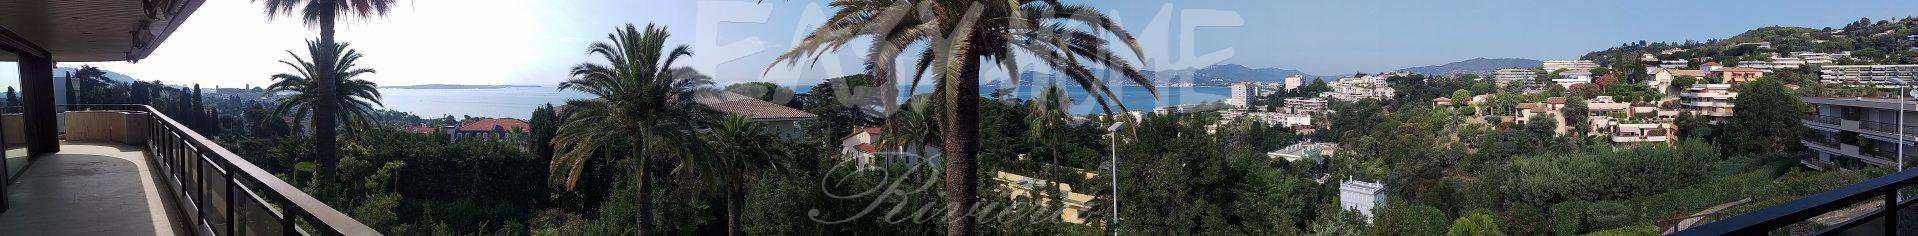 FOR SALE- BUILDING CANNES PANORAMIC SEA VIEW